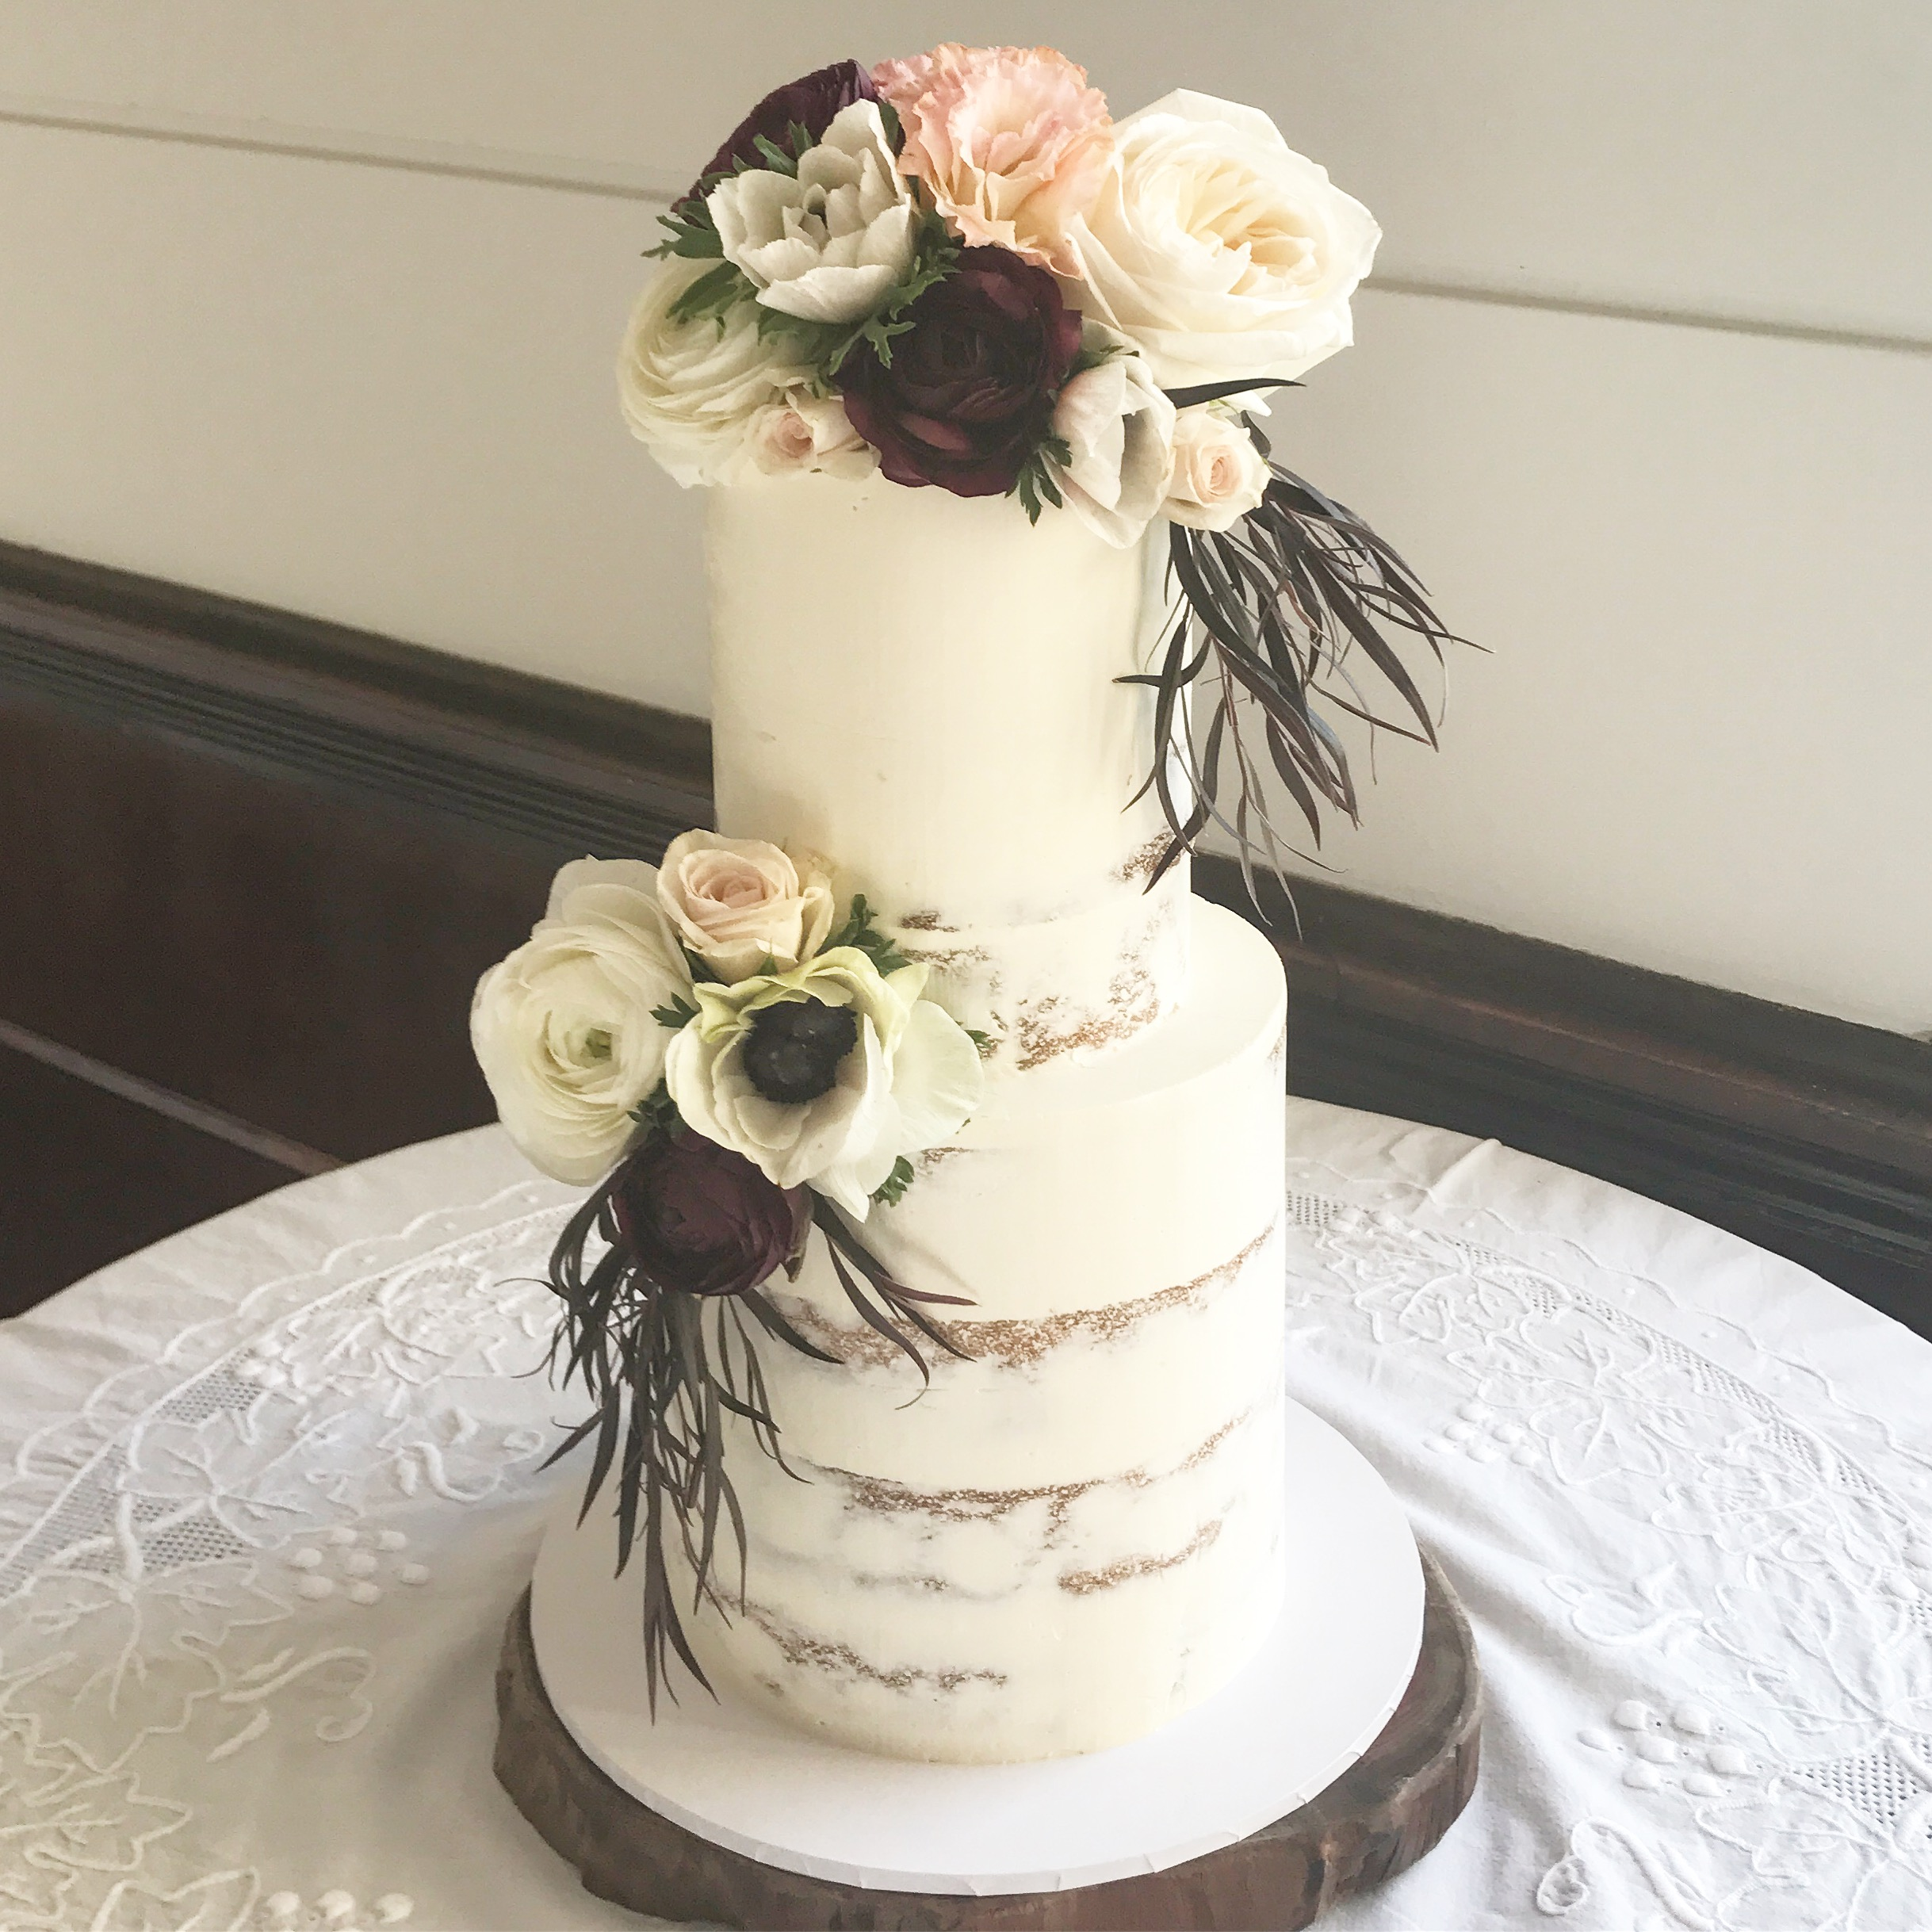 Bronwyn - September 2017 - THANK YOU so much for creating our amazing wedding cake. The cake was exactly what we imagined it to be, and tasted even better! Eliza was an absolute professional, prompt in her responses and simply a pleasure to deal with. Thankyou again! Xx